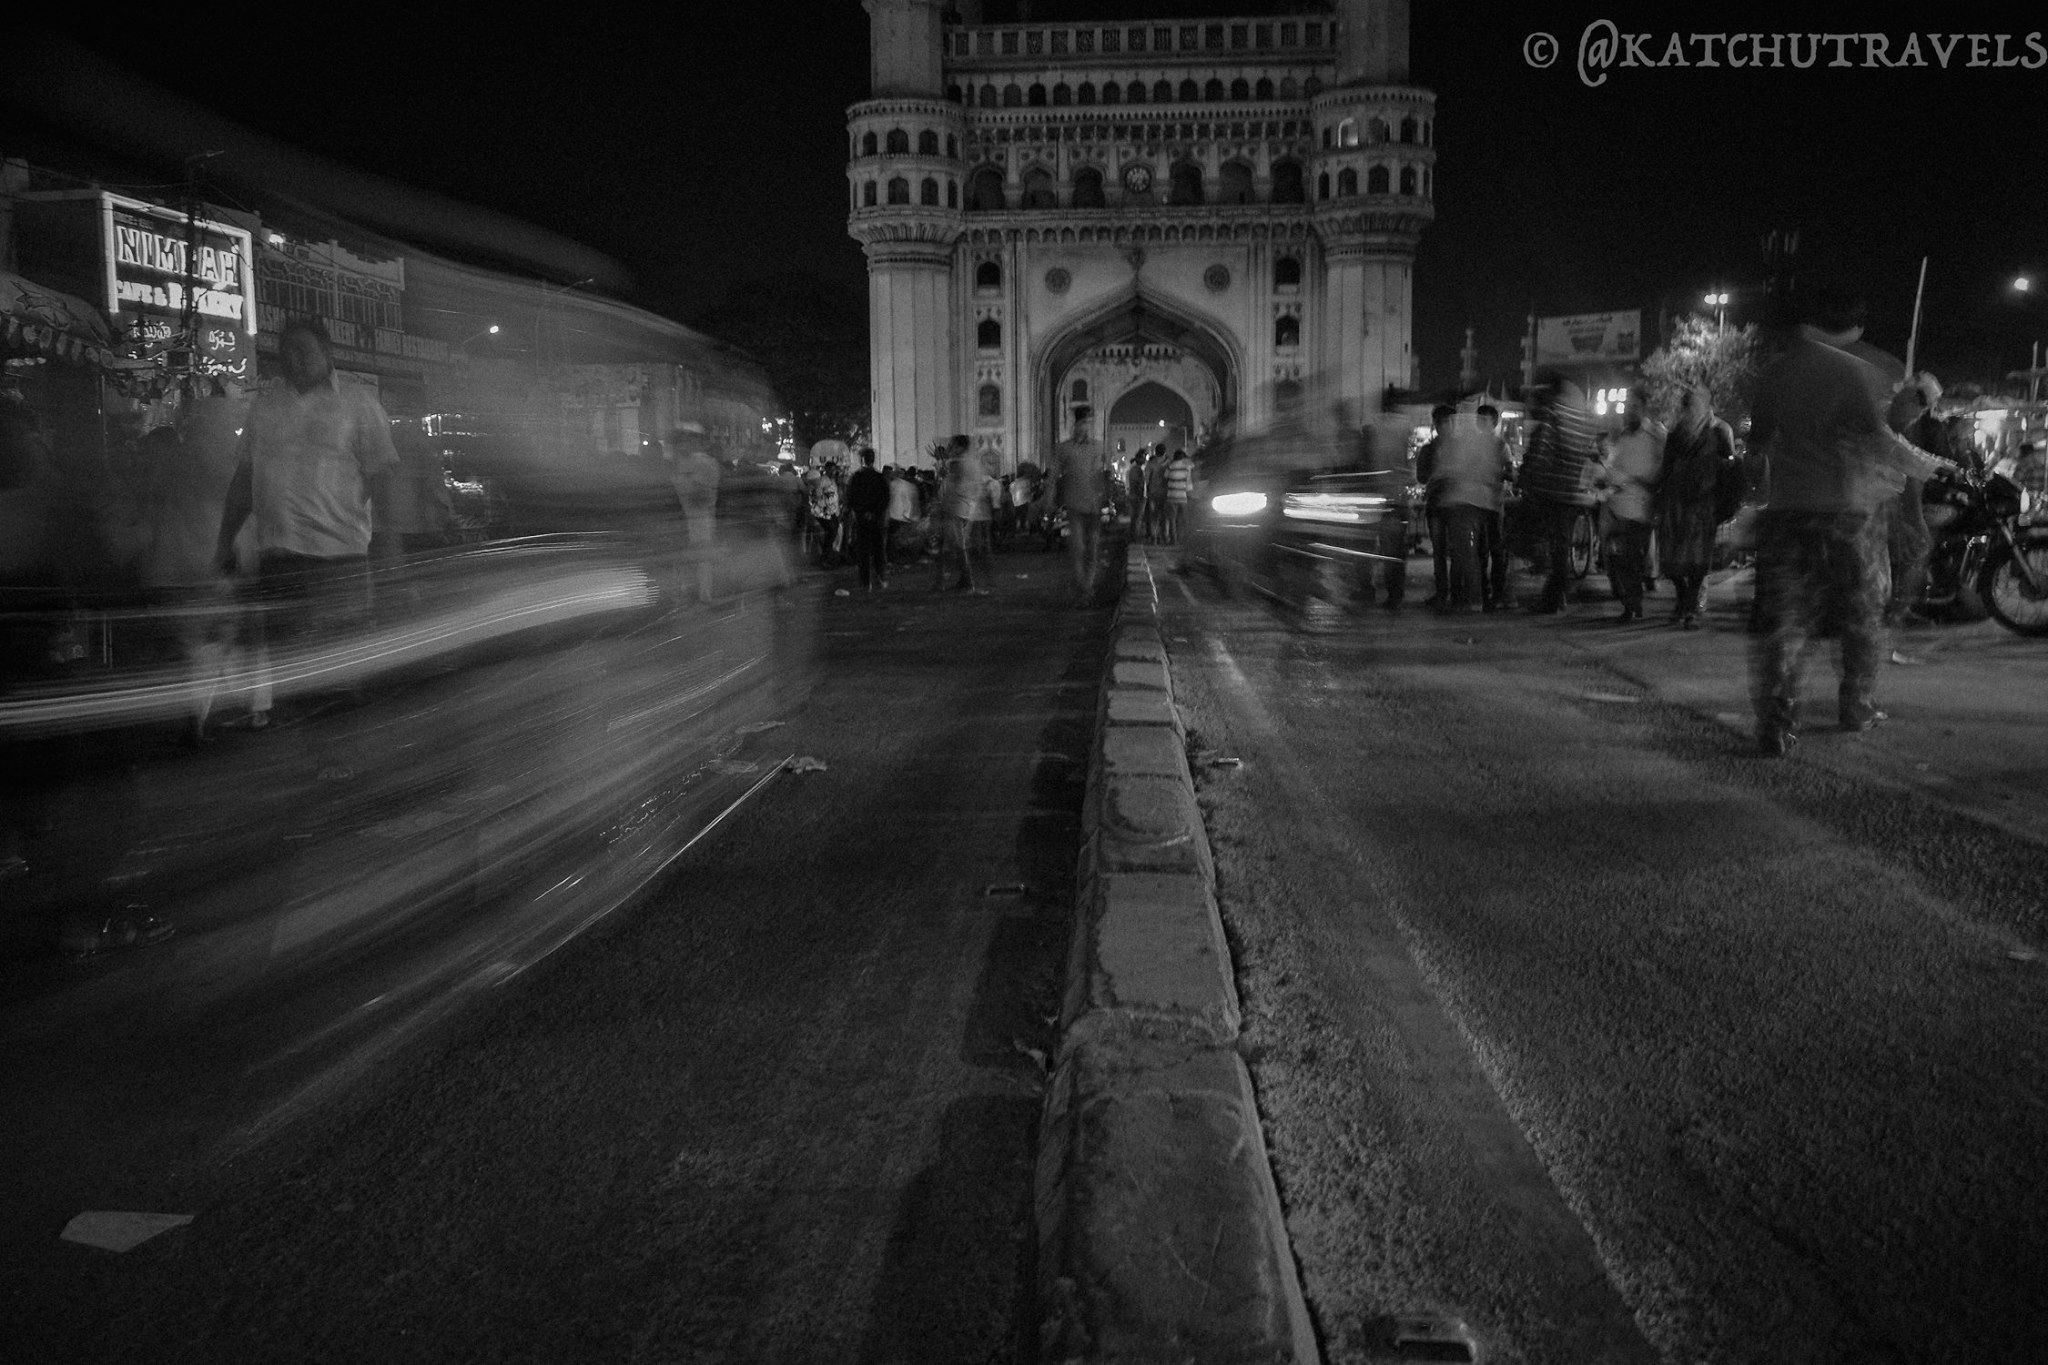 Zipping through the Charminar